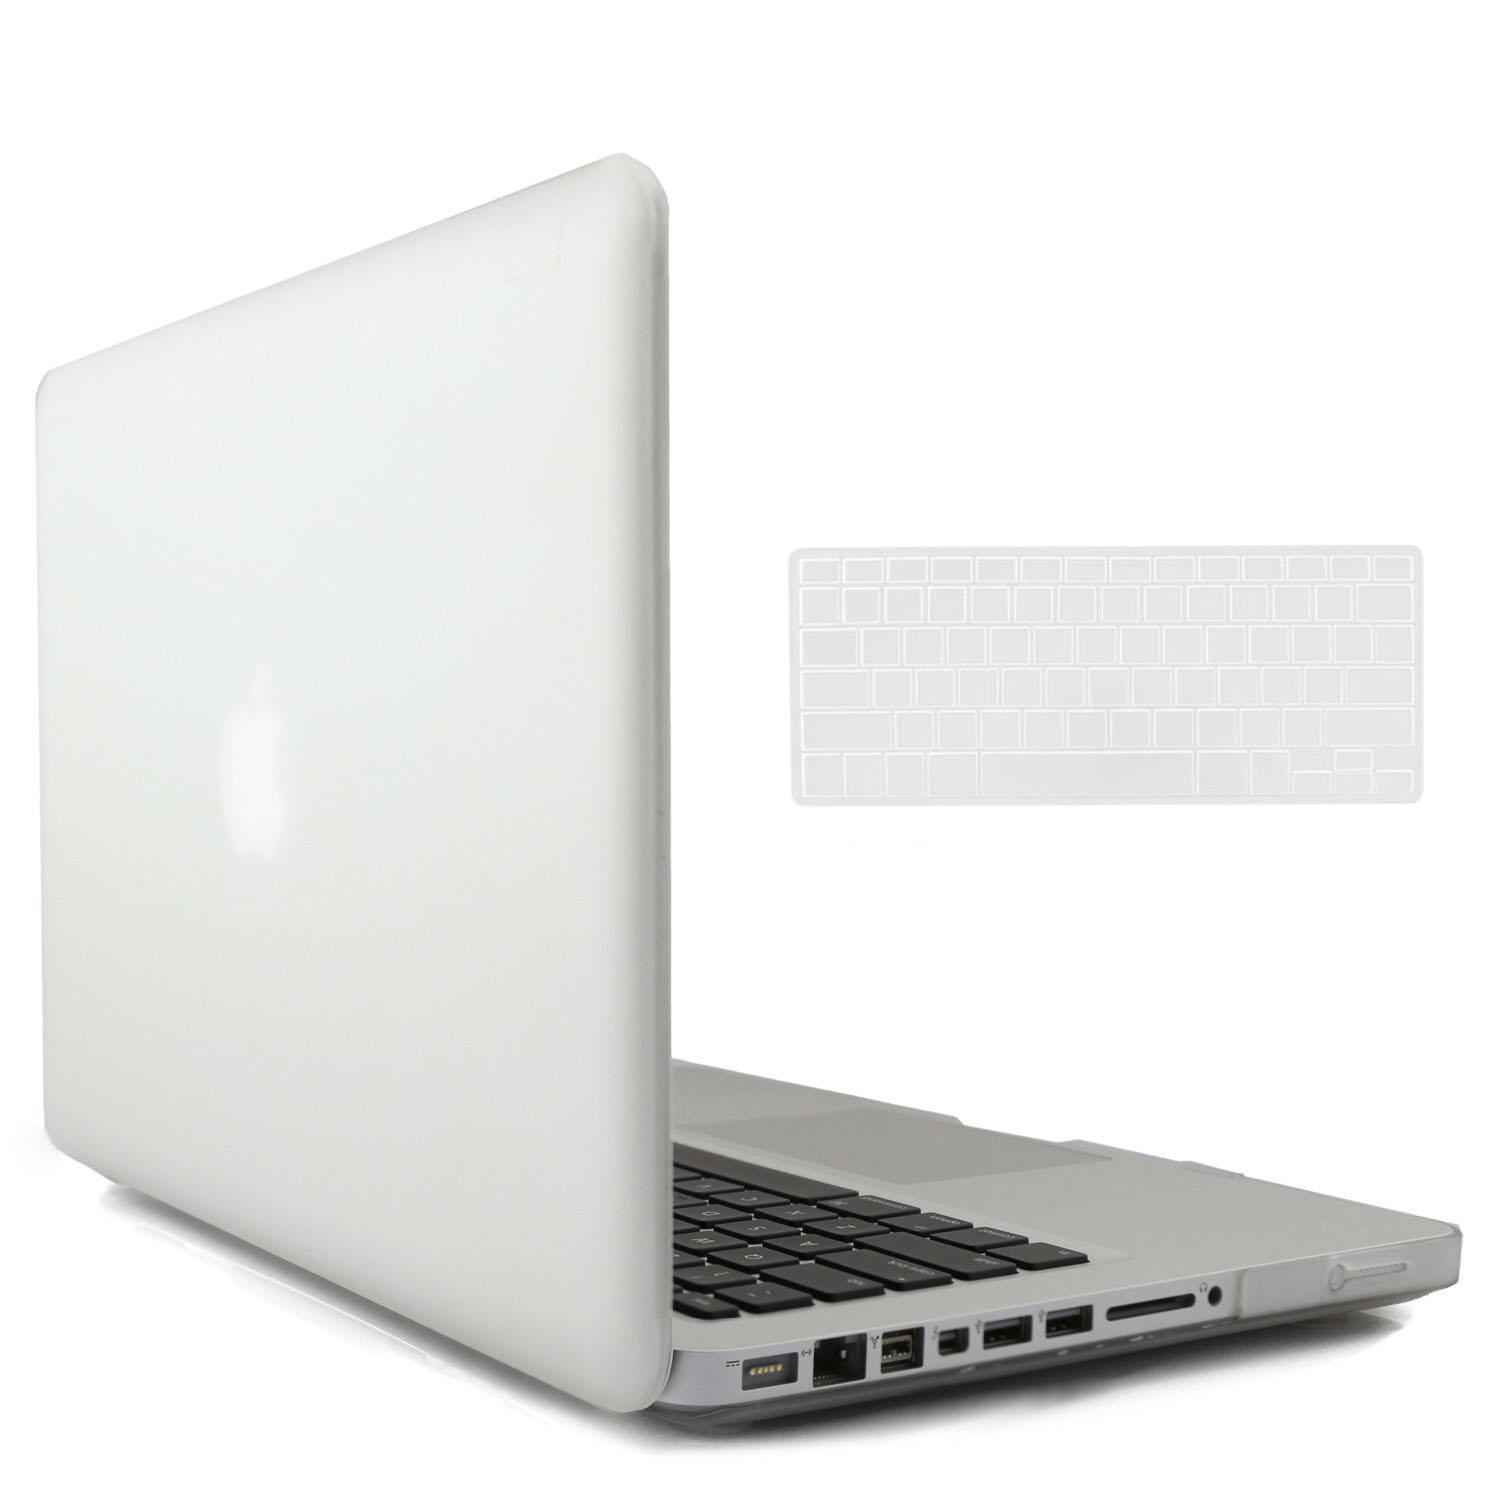 Mac Hard Covers For Sale Apple Prices Brands Specs Original New Rubber Feet Macbook Pro 13 15 17 2009 2012 Year Welink 3 In 1 Matte Case Soft Touch Plastic